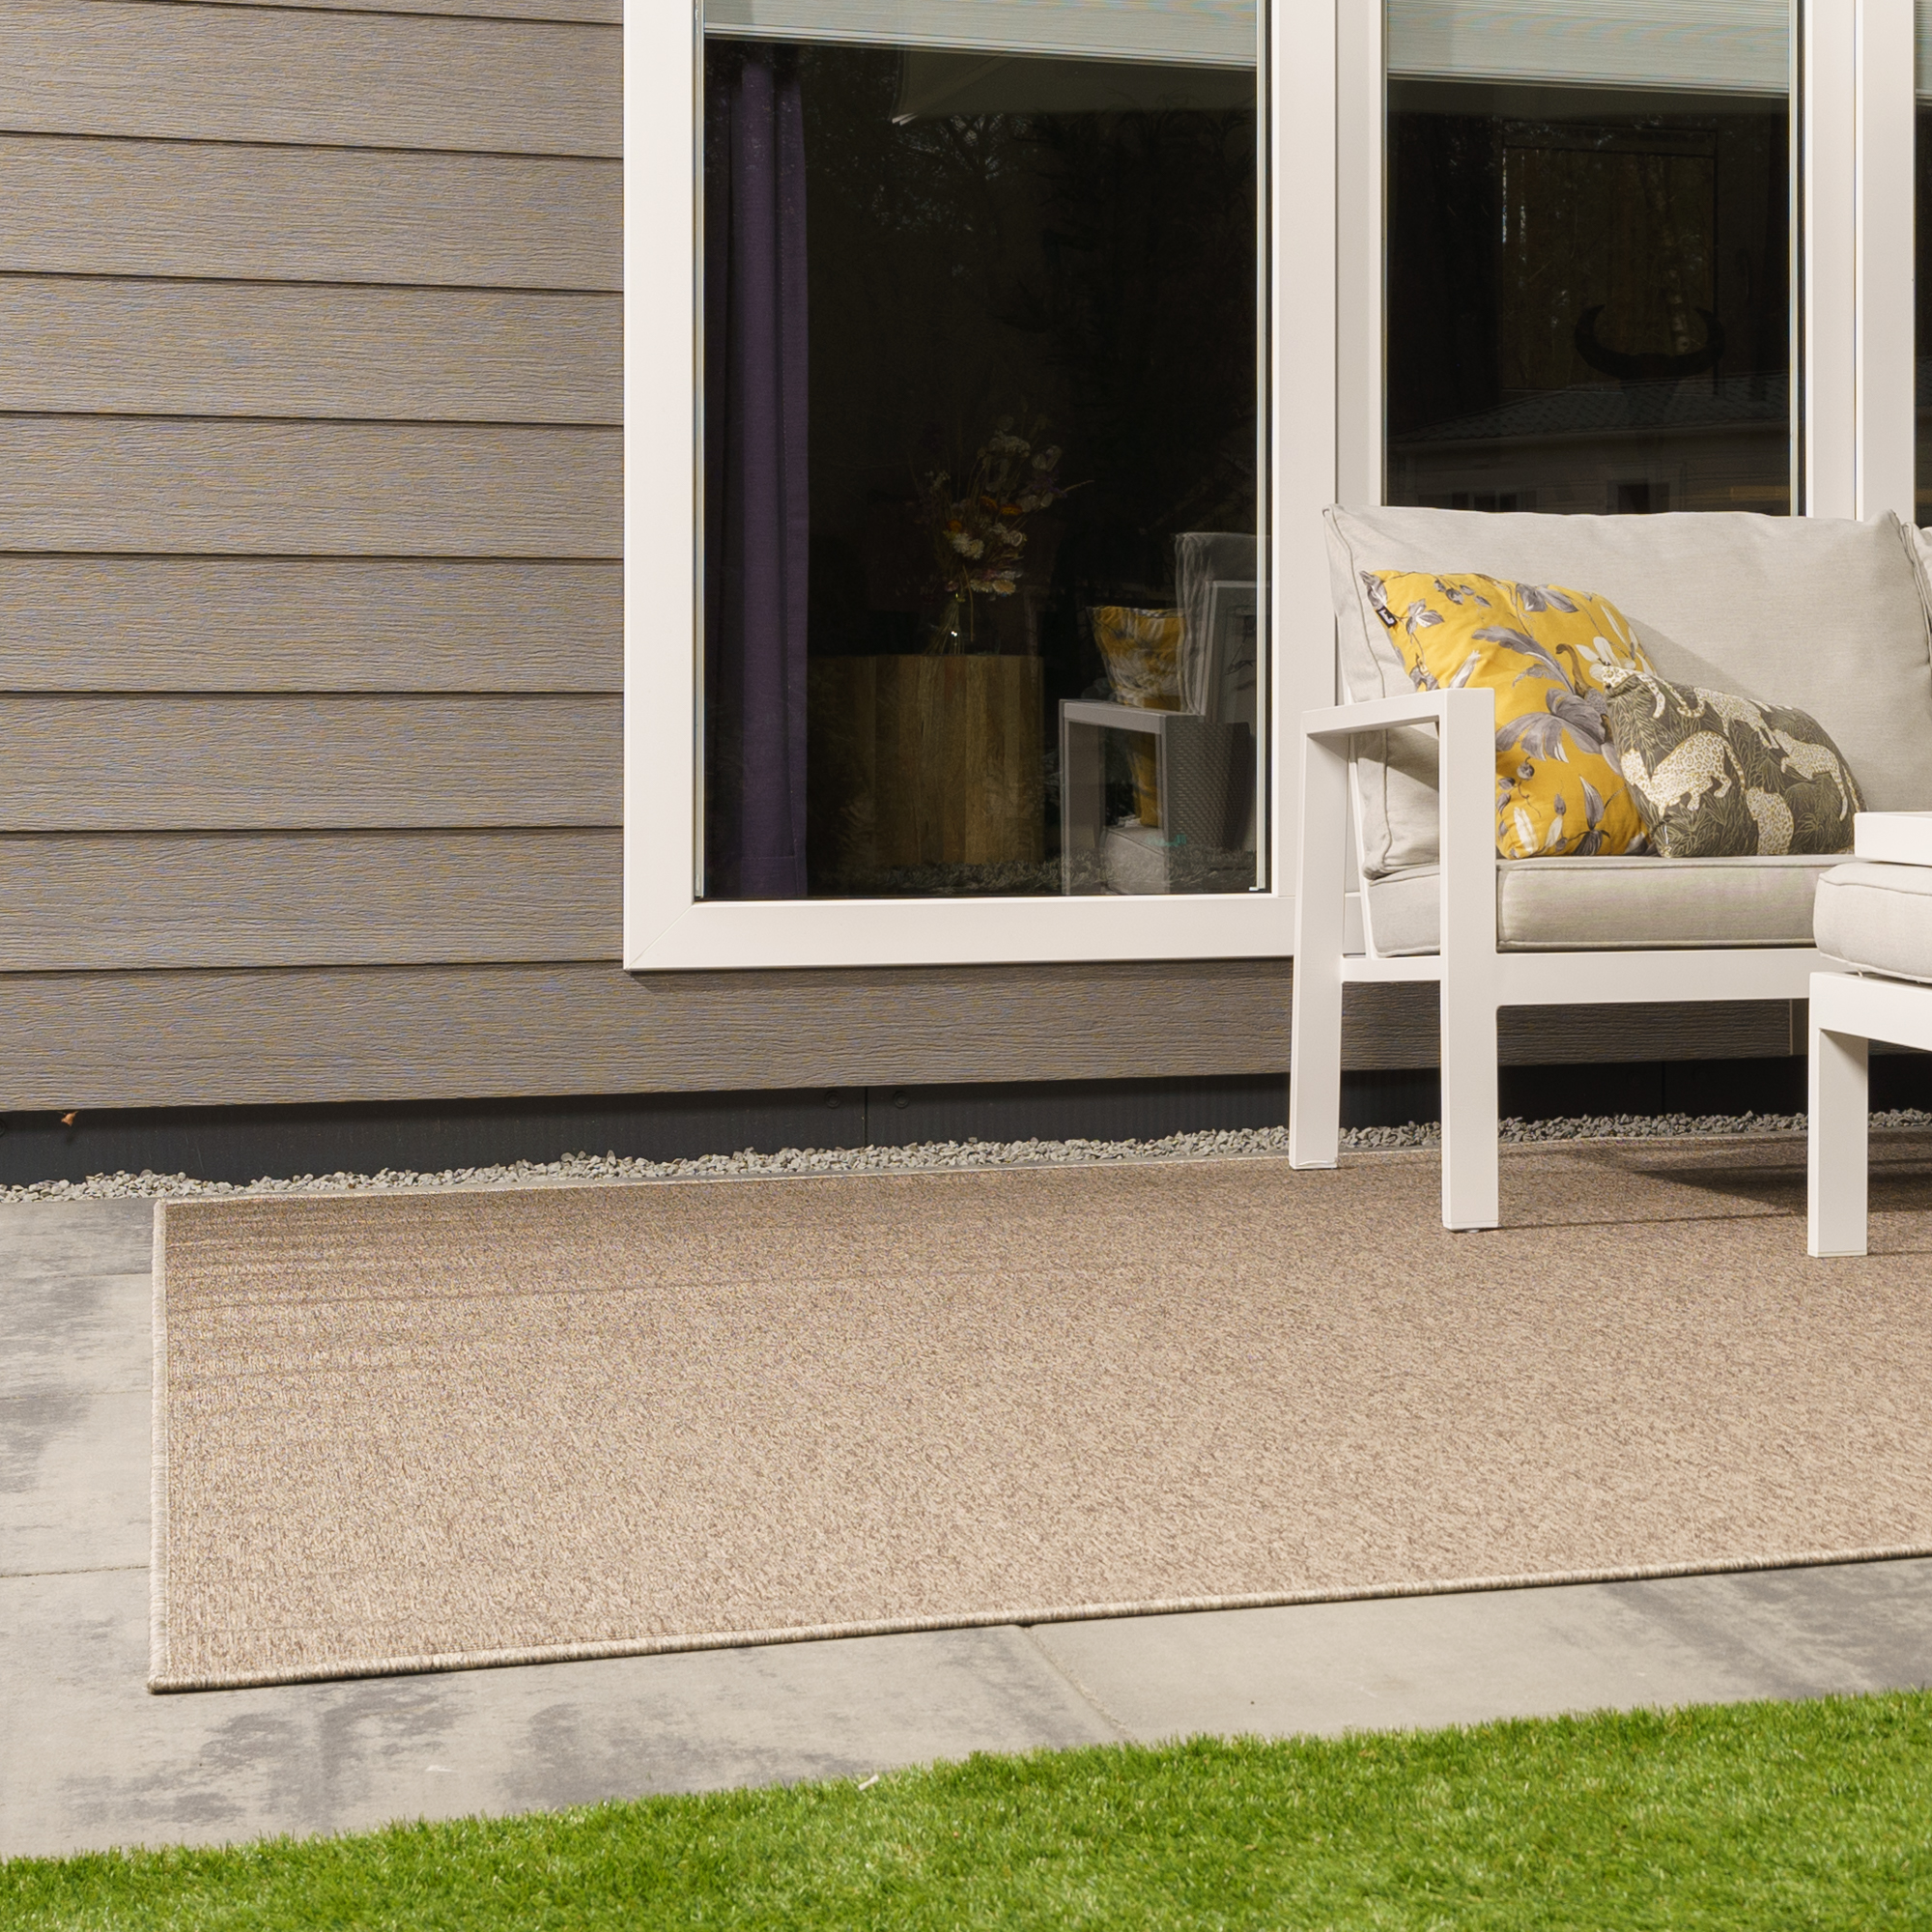 Vloerkleed Xilento Outdoor 4506-88